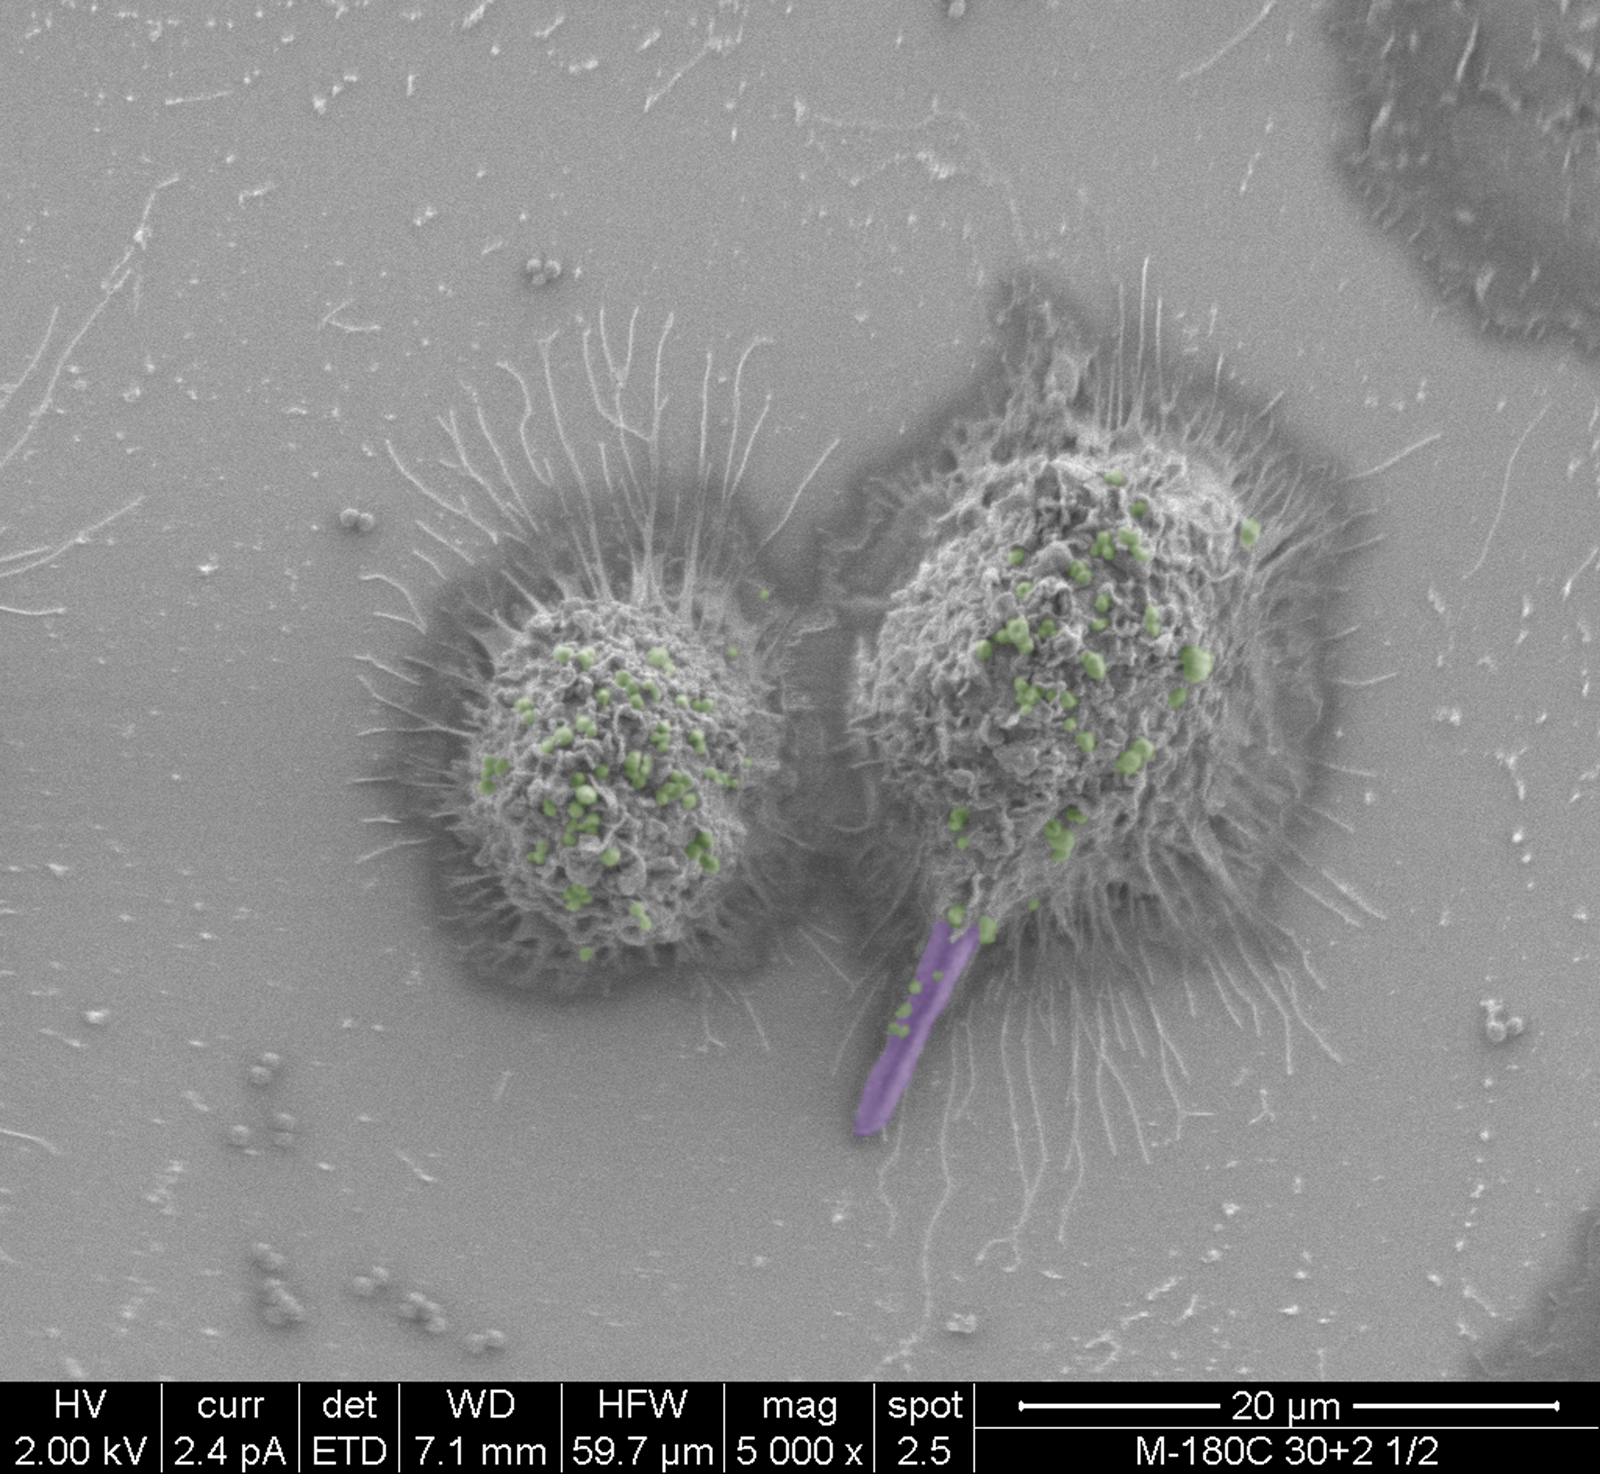 False-colored scanning electron micrographs depicting the co-phagocytosis of <i>C</i>. <i>albicans</i> and <i>S</i>. <i>aureus</i> by murine macrophages.